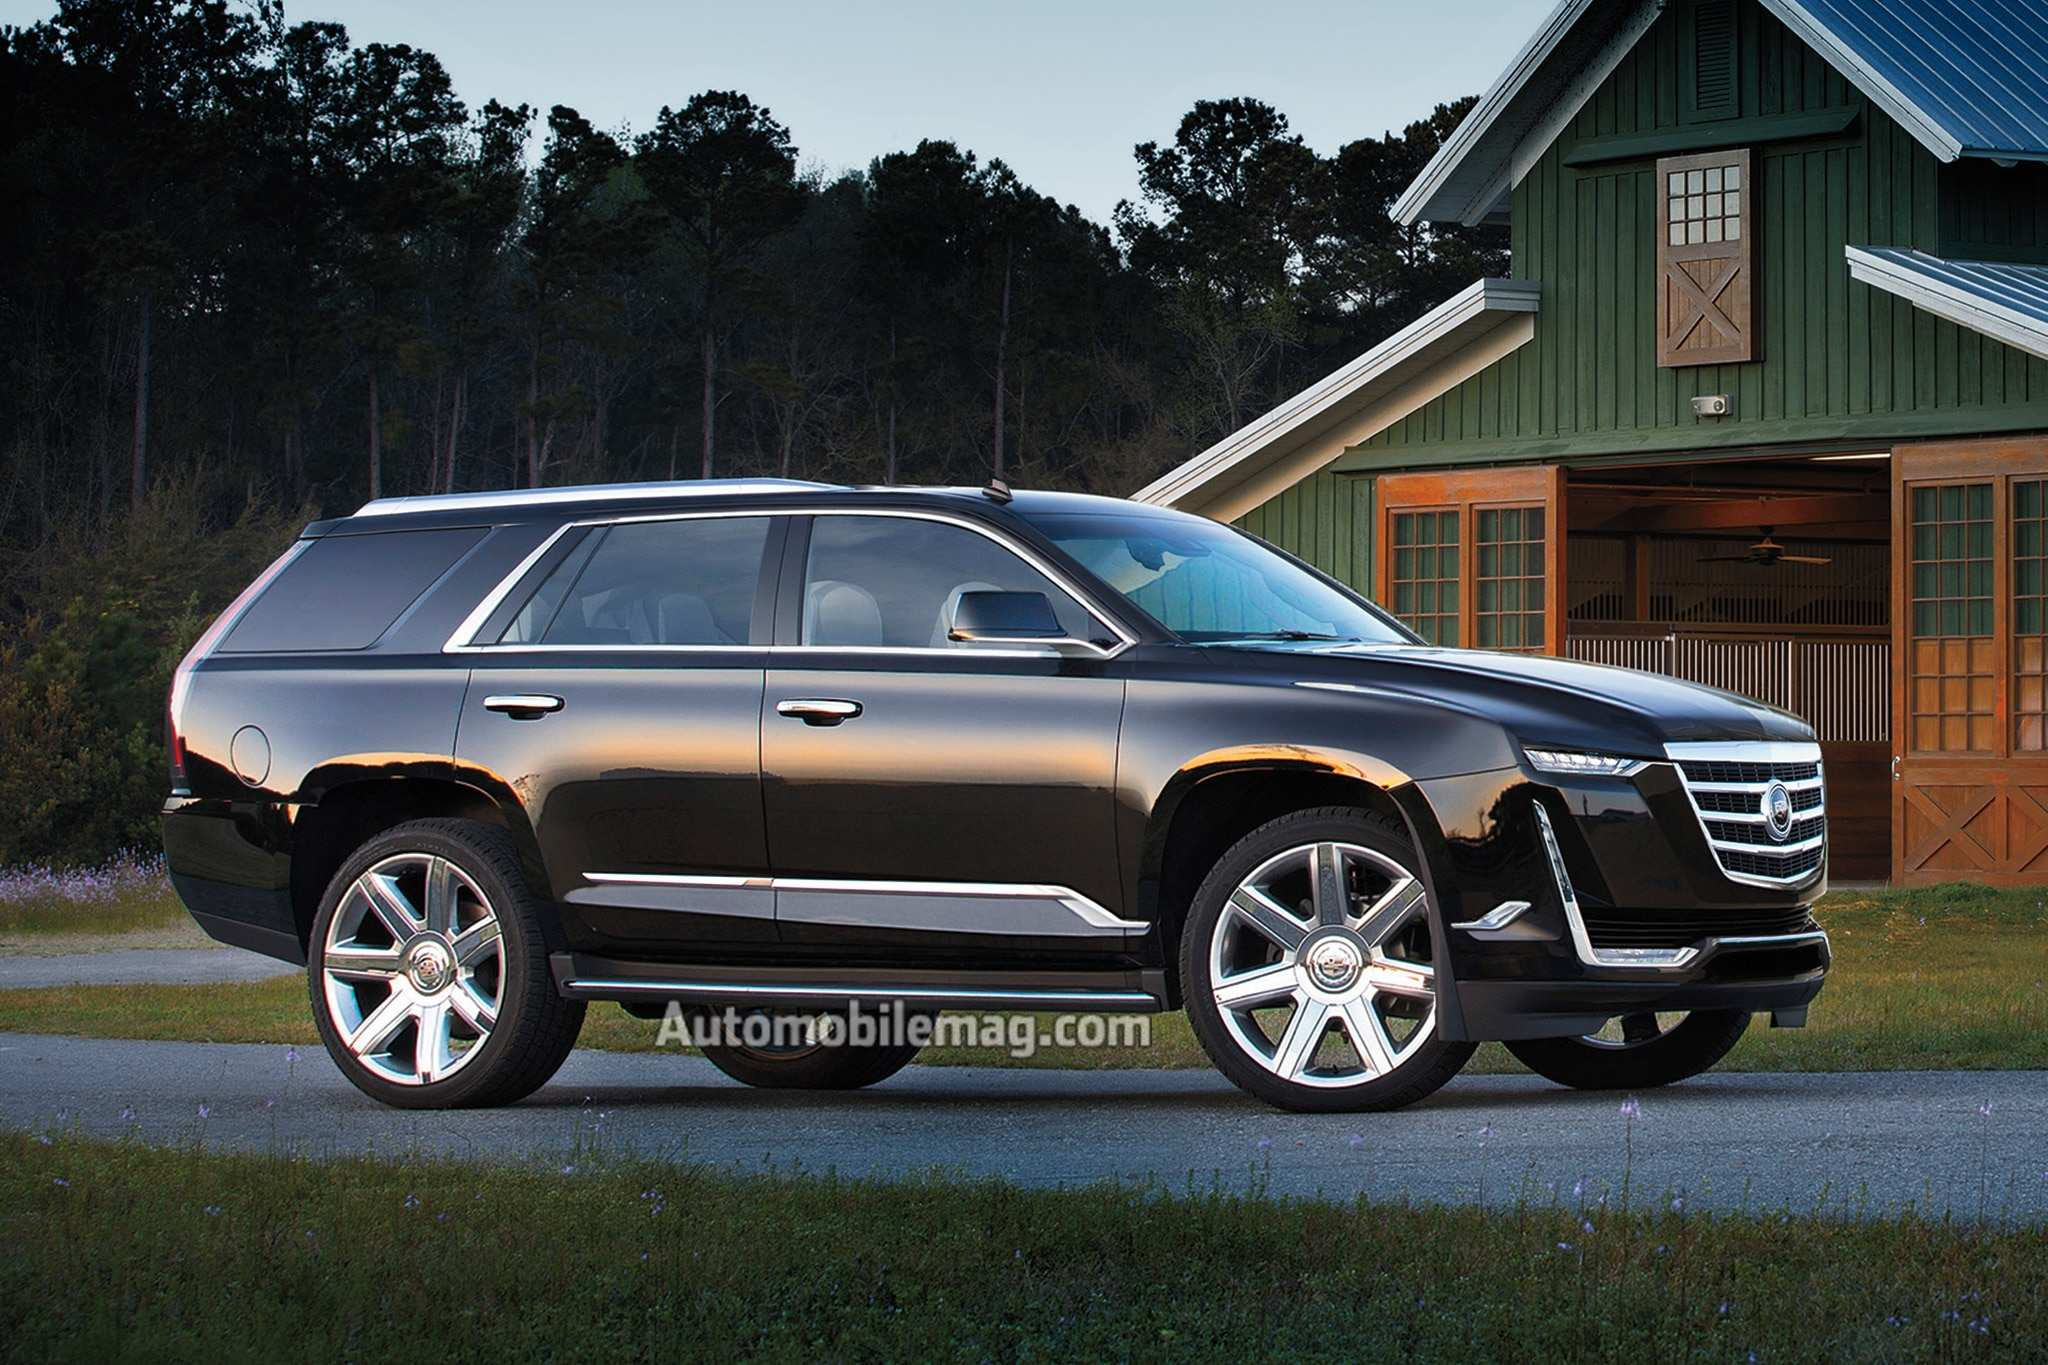 85 New Release Date For 2020 Cadillac Escalade New Concept with Release Date For 2020 Cadillac Escalade